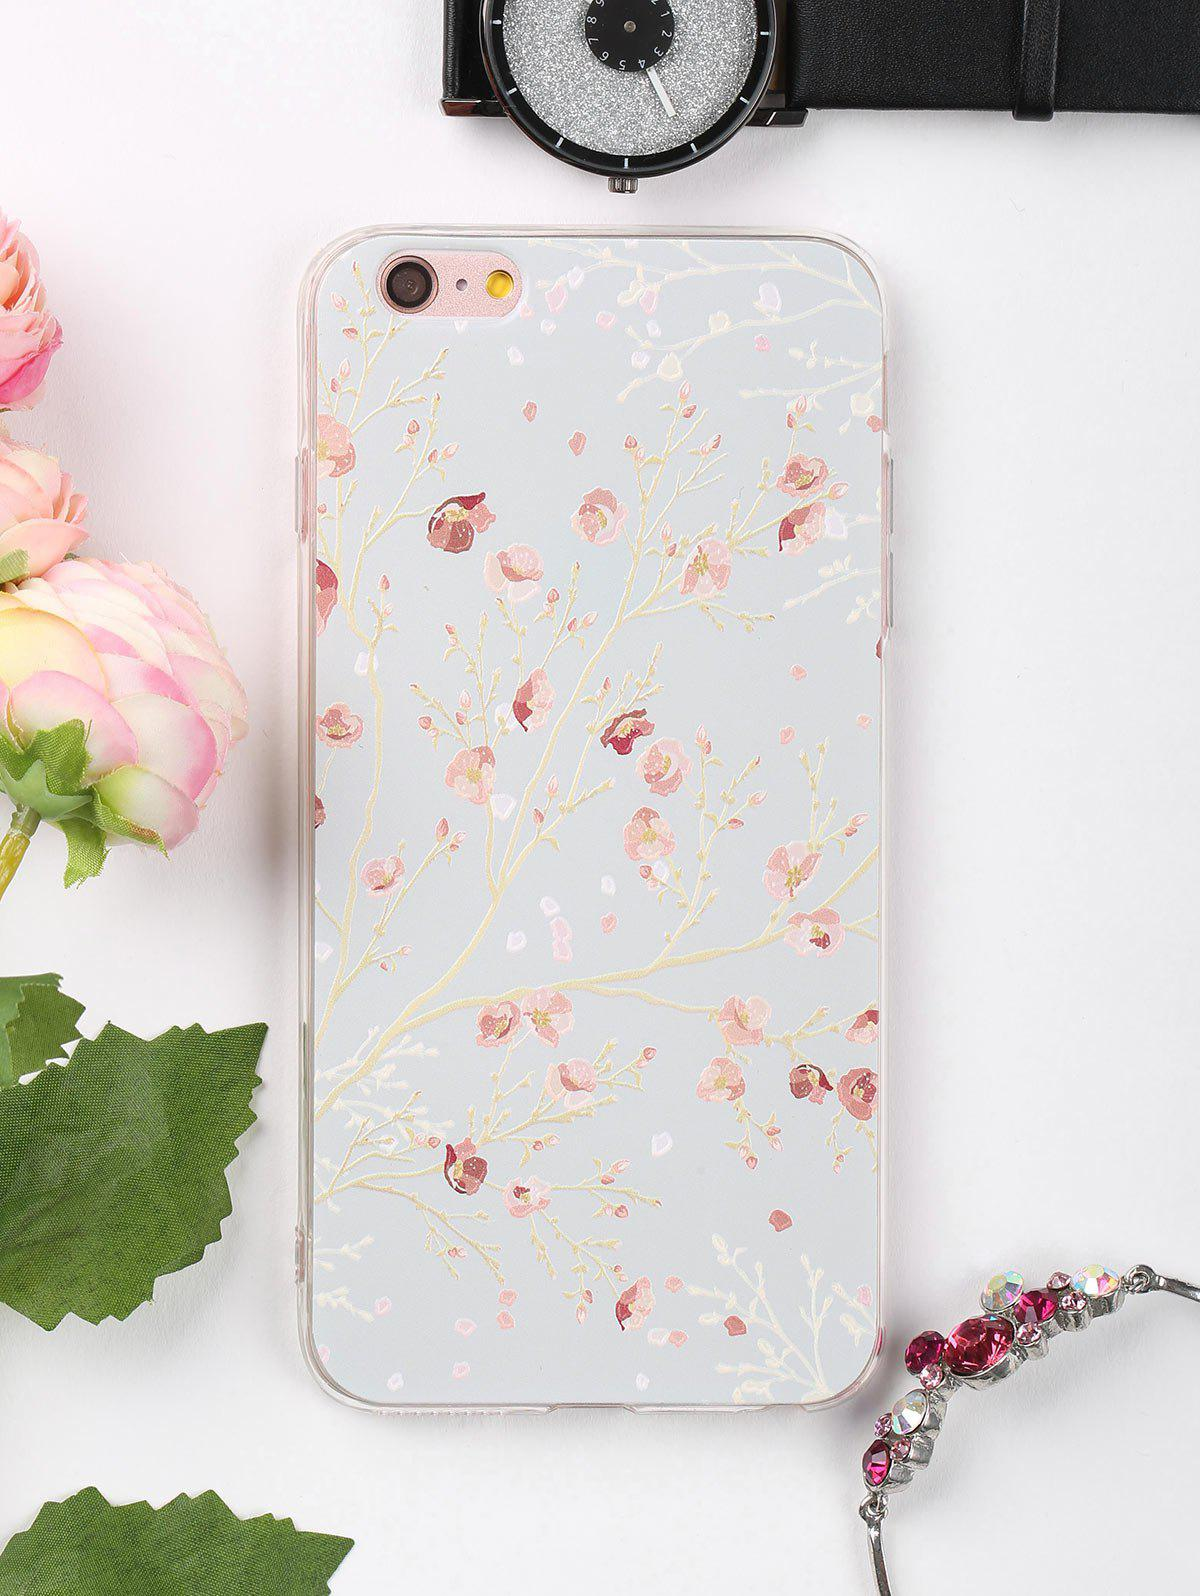 69 Off Branch Floral Pattern Soft Phone Case For Iphone Rosegal